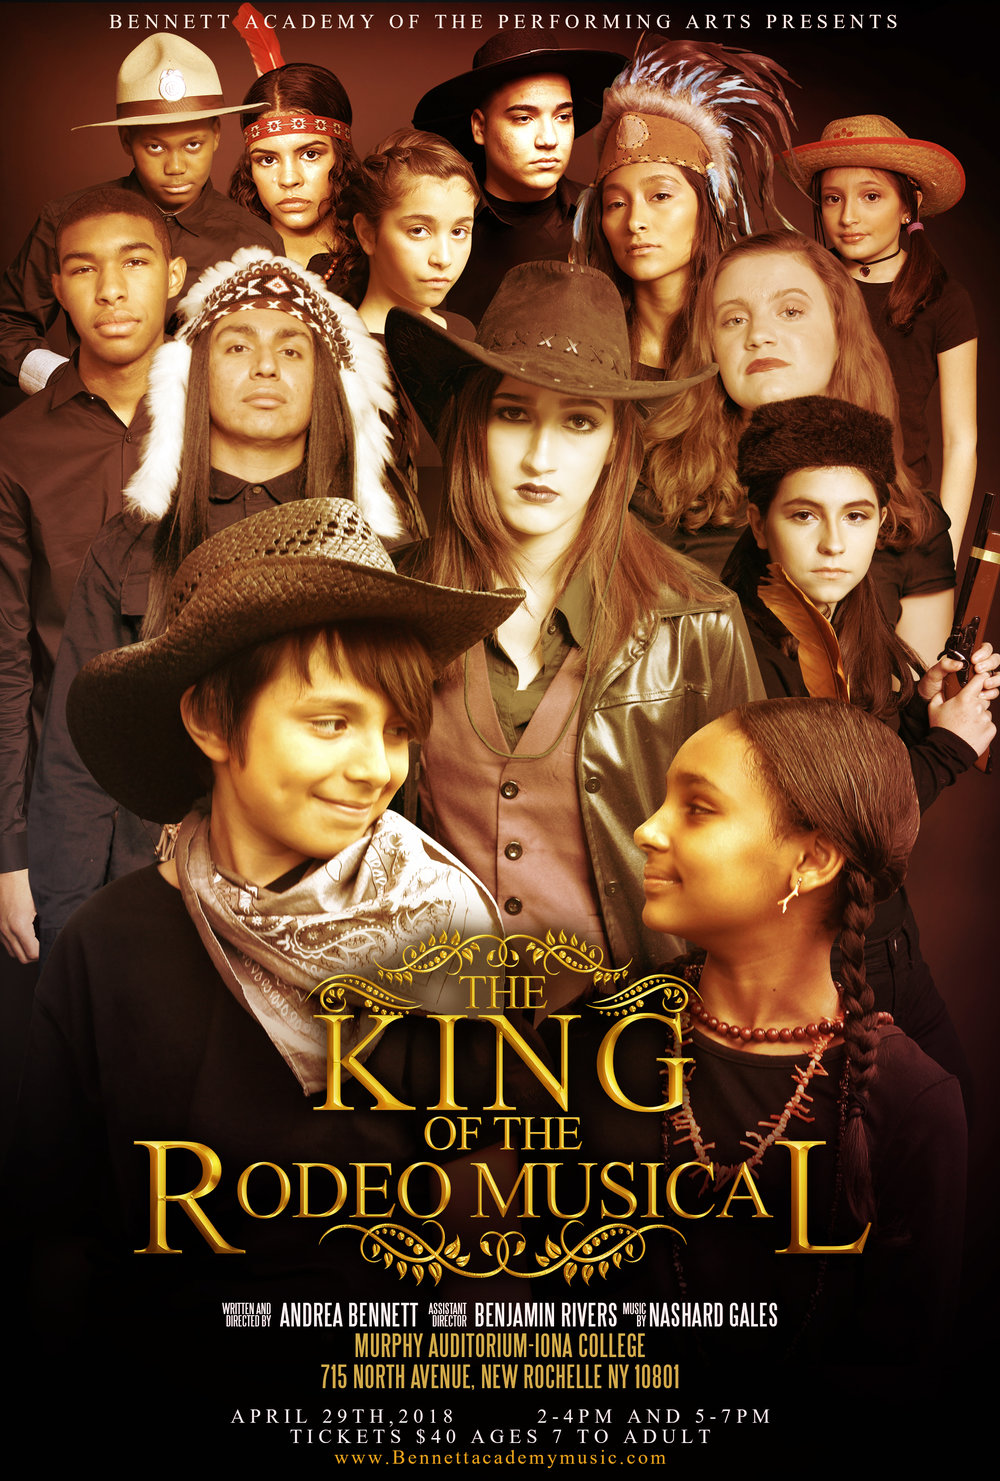 PLAYBILL for our Off Broadway Play-The King Of The Rodeo-(debut June 24-25,2017 at The John Cullum Theater)